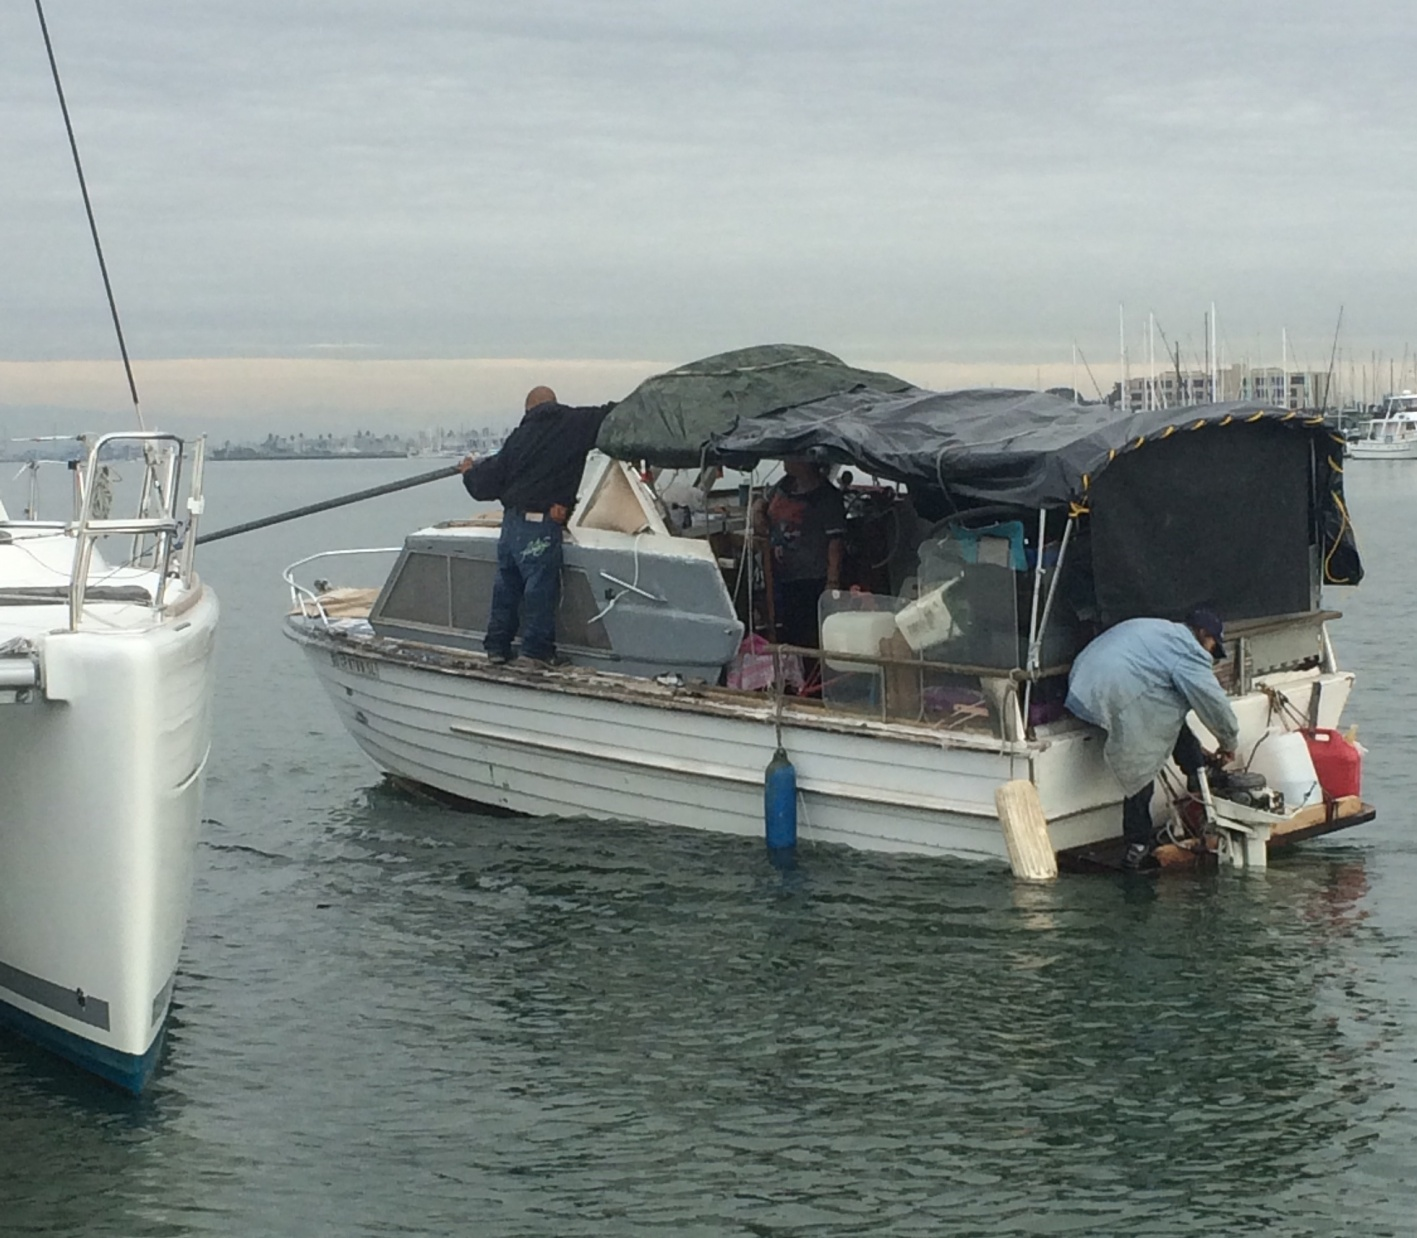 Click image for larger version  Name:Derelict Boat Raming other boats 012816.jpg Views:96 Size:425.1 KB ID:117868